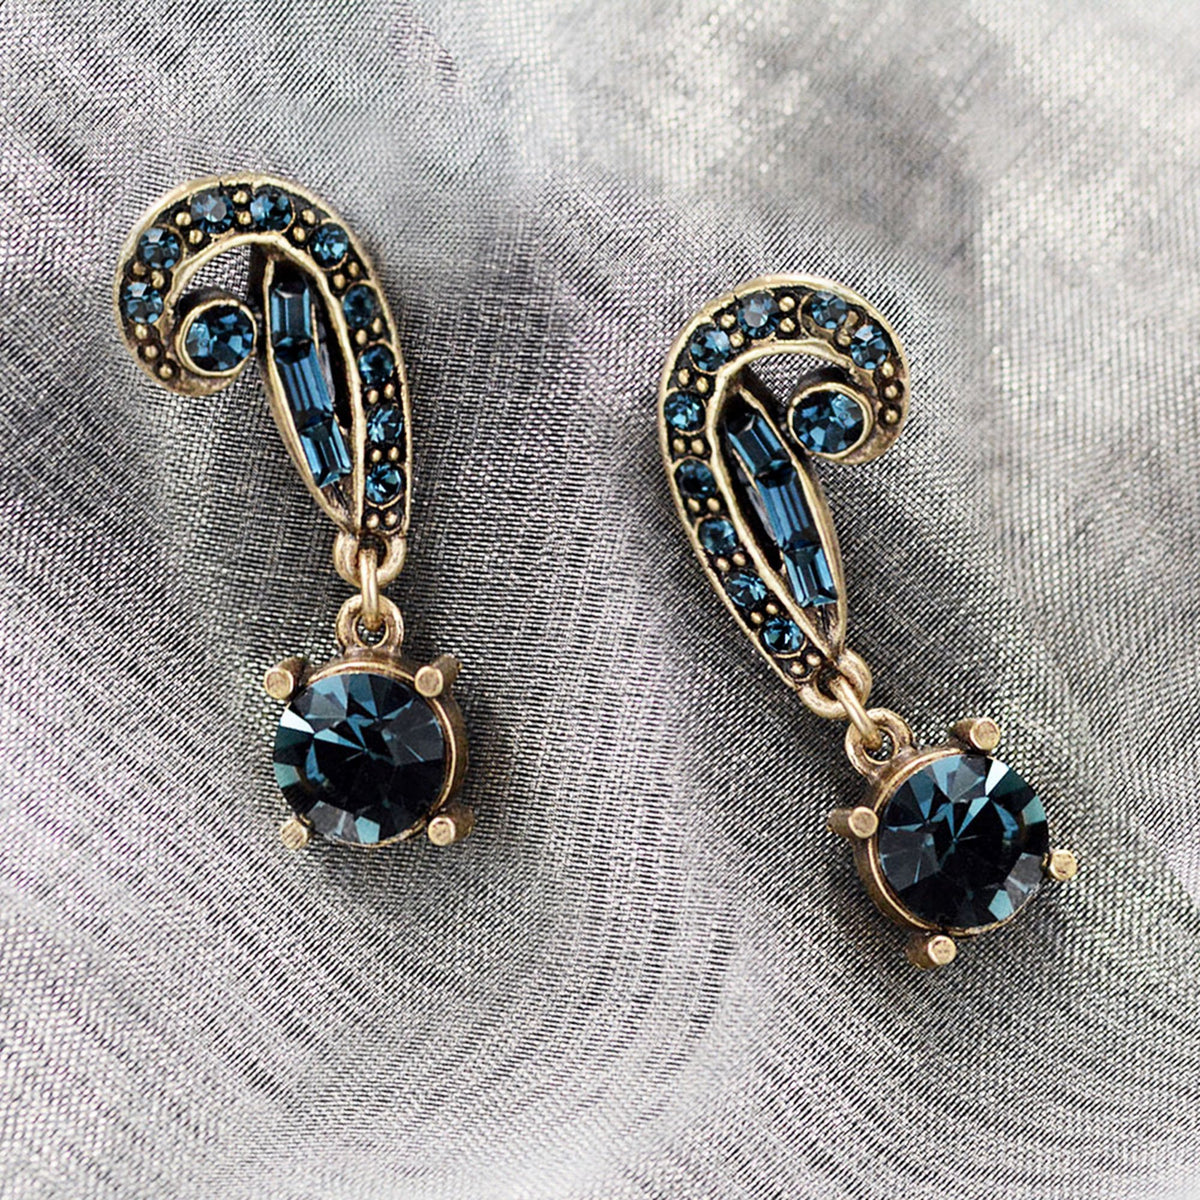 Art Deco Vintage Hollywood Crystal Earrings E1102 - Sweet Romance Wholesale